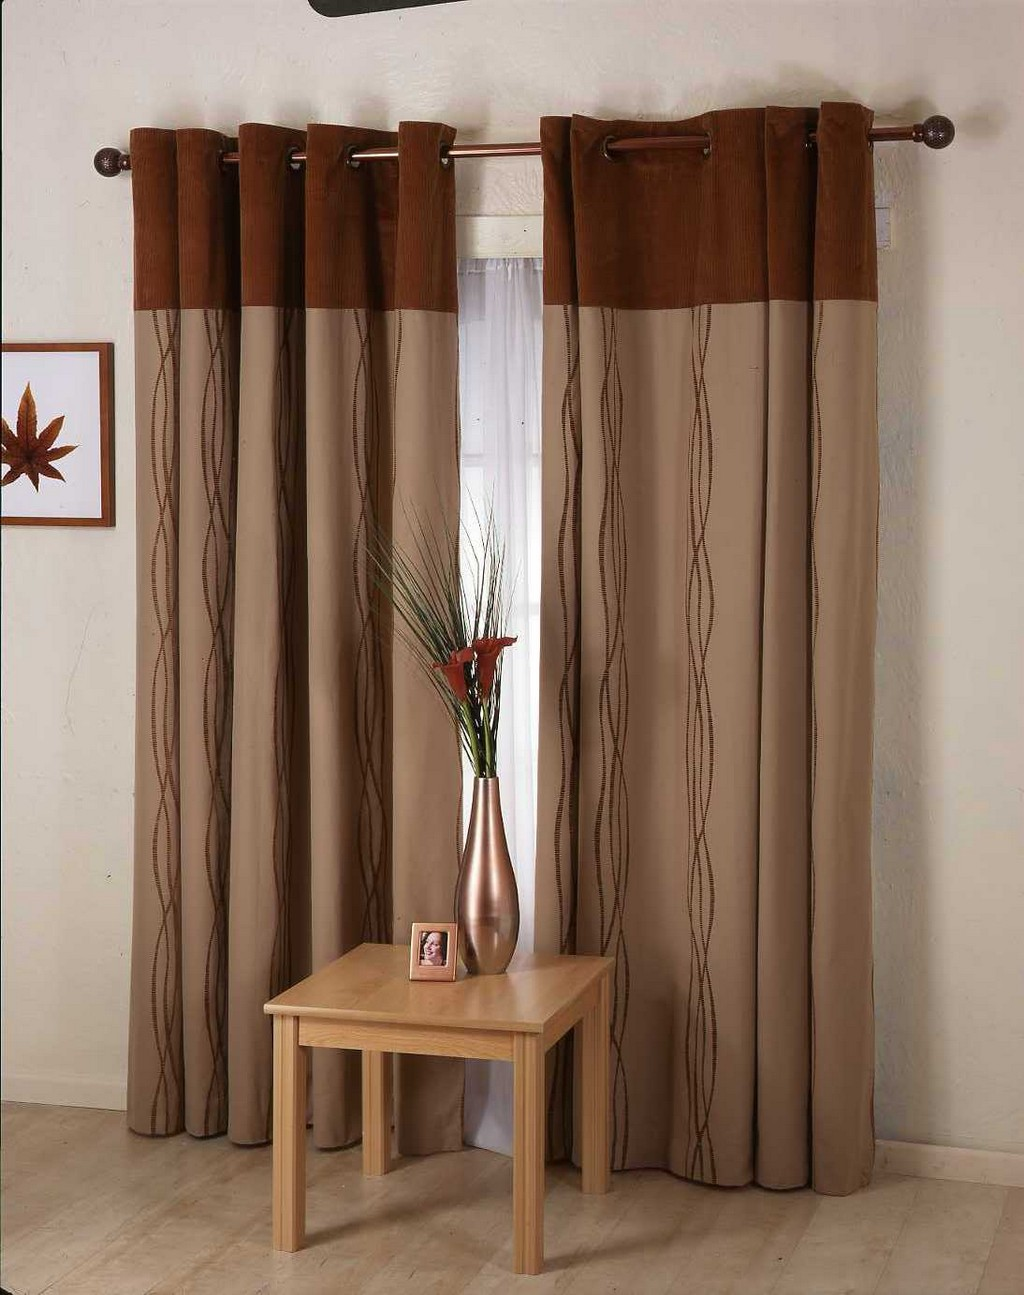 waverly kitchen curtains, tucan kitchen curtains, country curtain catalog, custom curtain rods